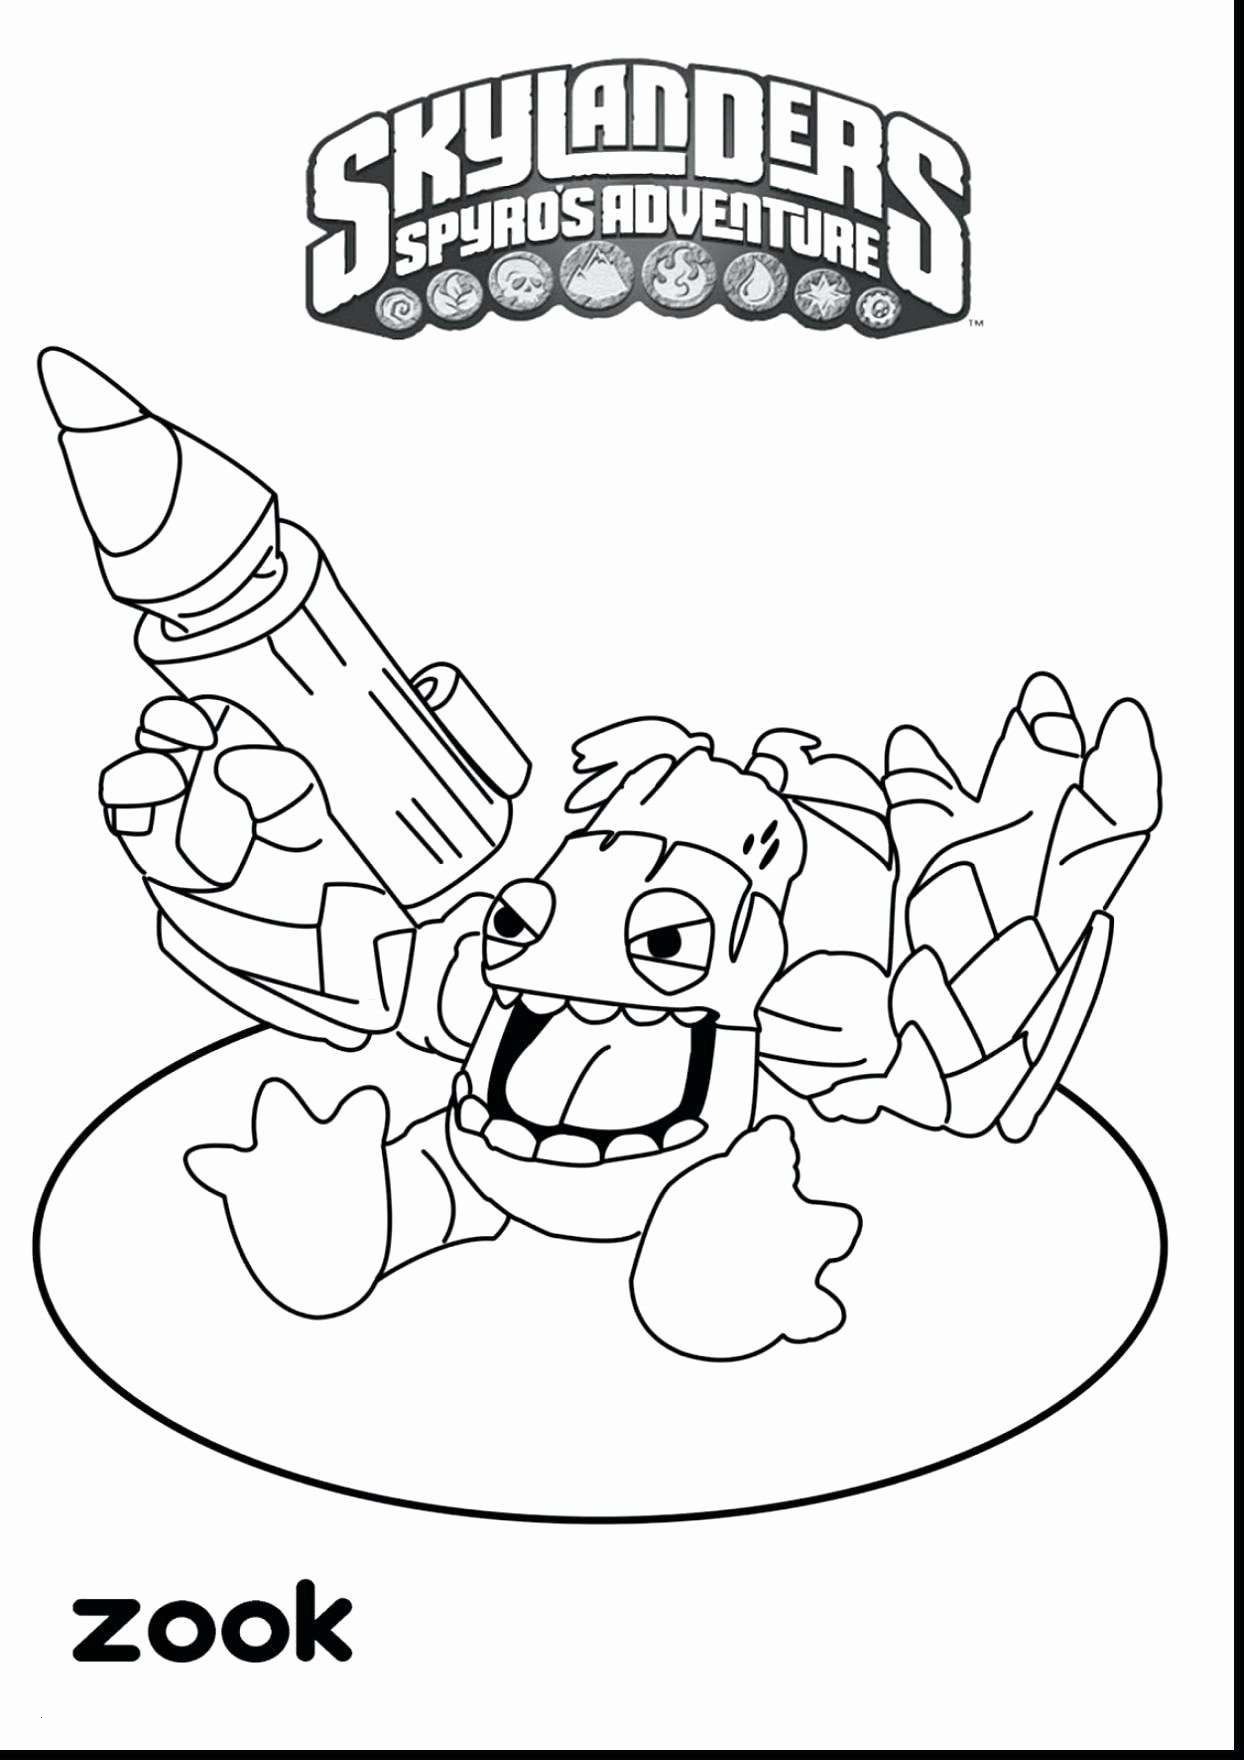 Hispanic Heritage Coloring Pages  Gallery 18a - Save it to your computer